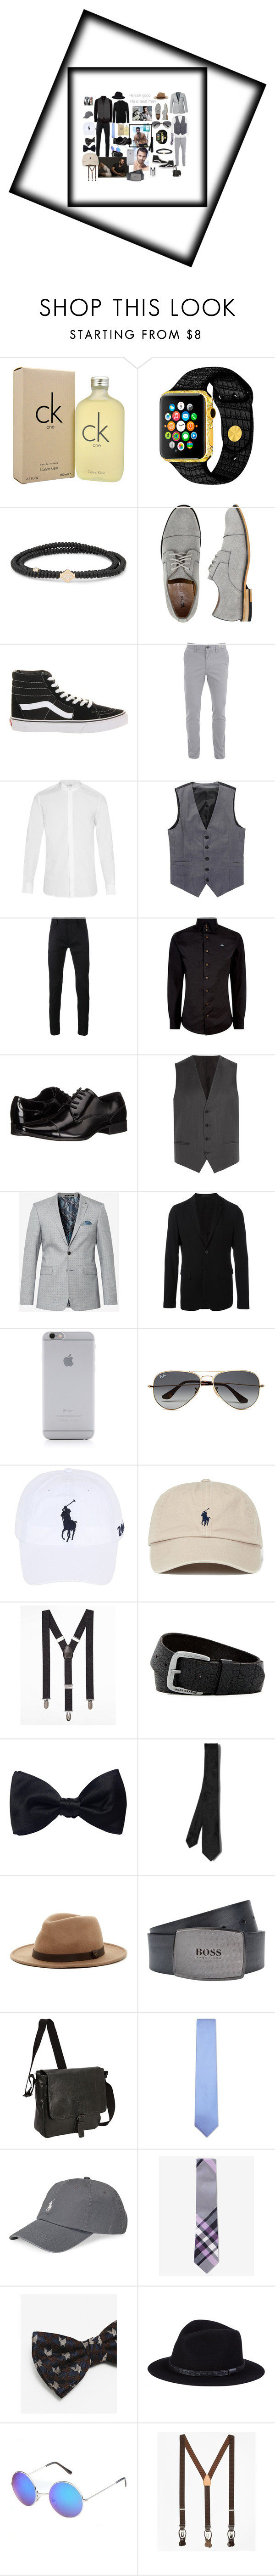 """Untitled #192"" by mommacarter ❤ liked on Polyvore featuring Calvin Klein, Luis Morais, X-Ray, Vans, Yves Saint Laurent, Haider Ackermann, Vivienne Westwood, HUGO, Ted Baker and Emporio Armani"